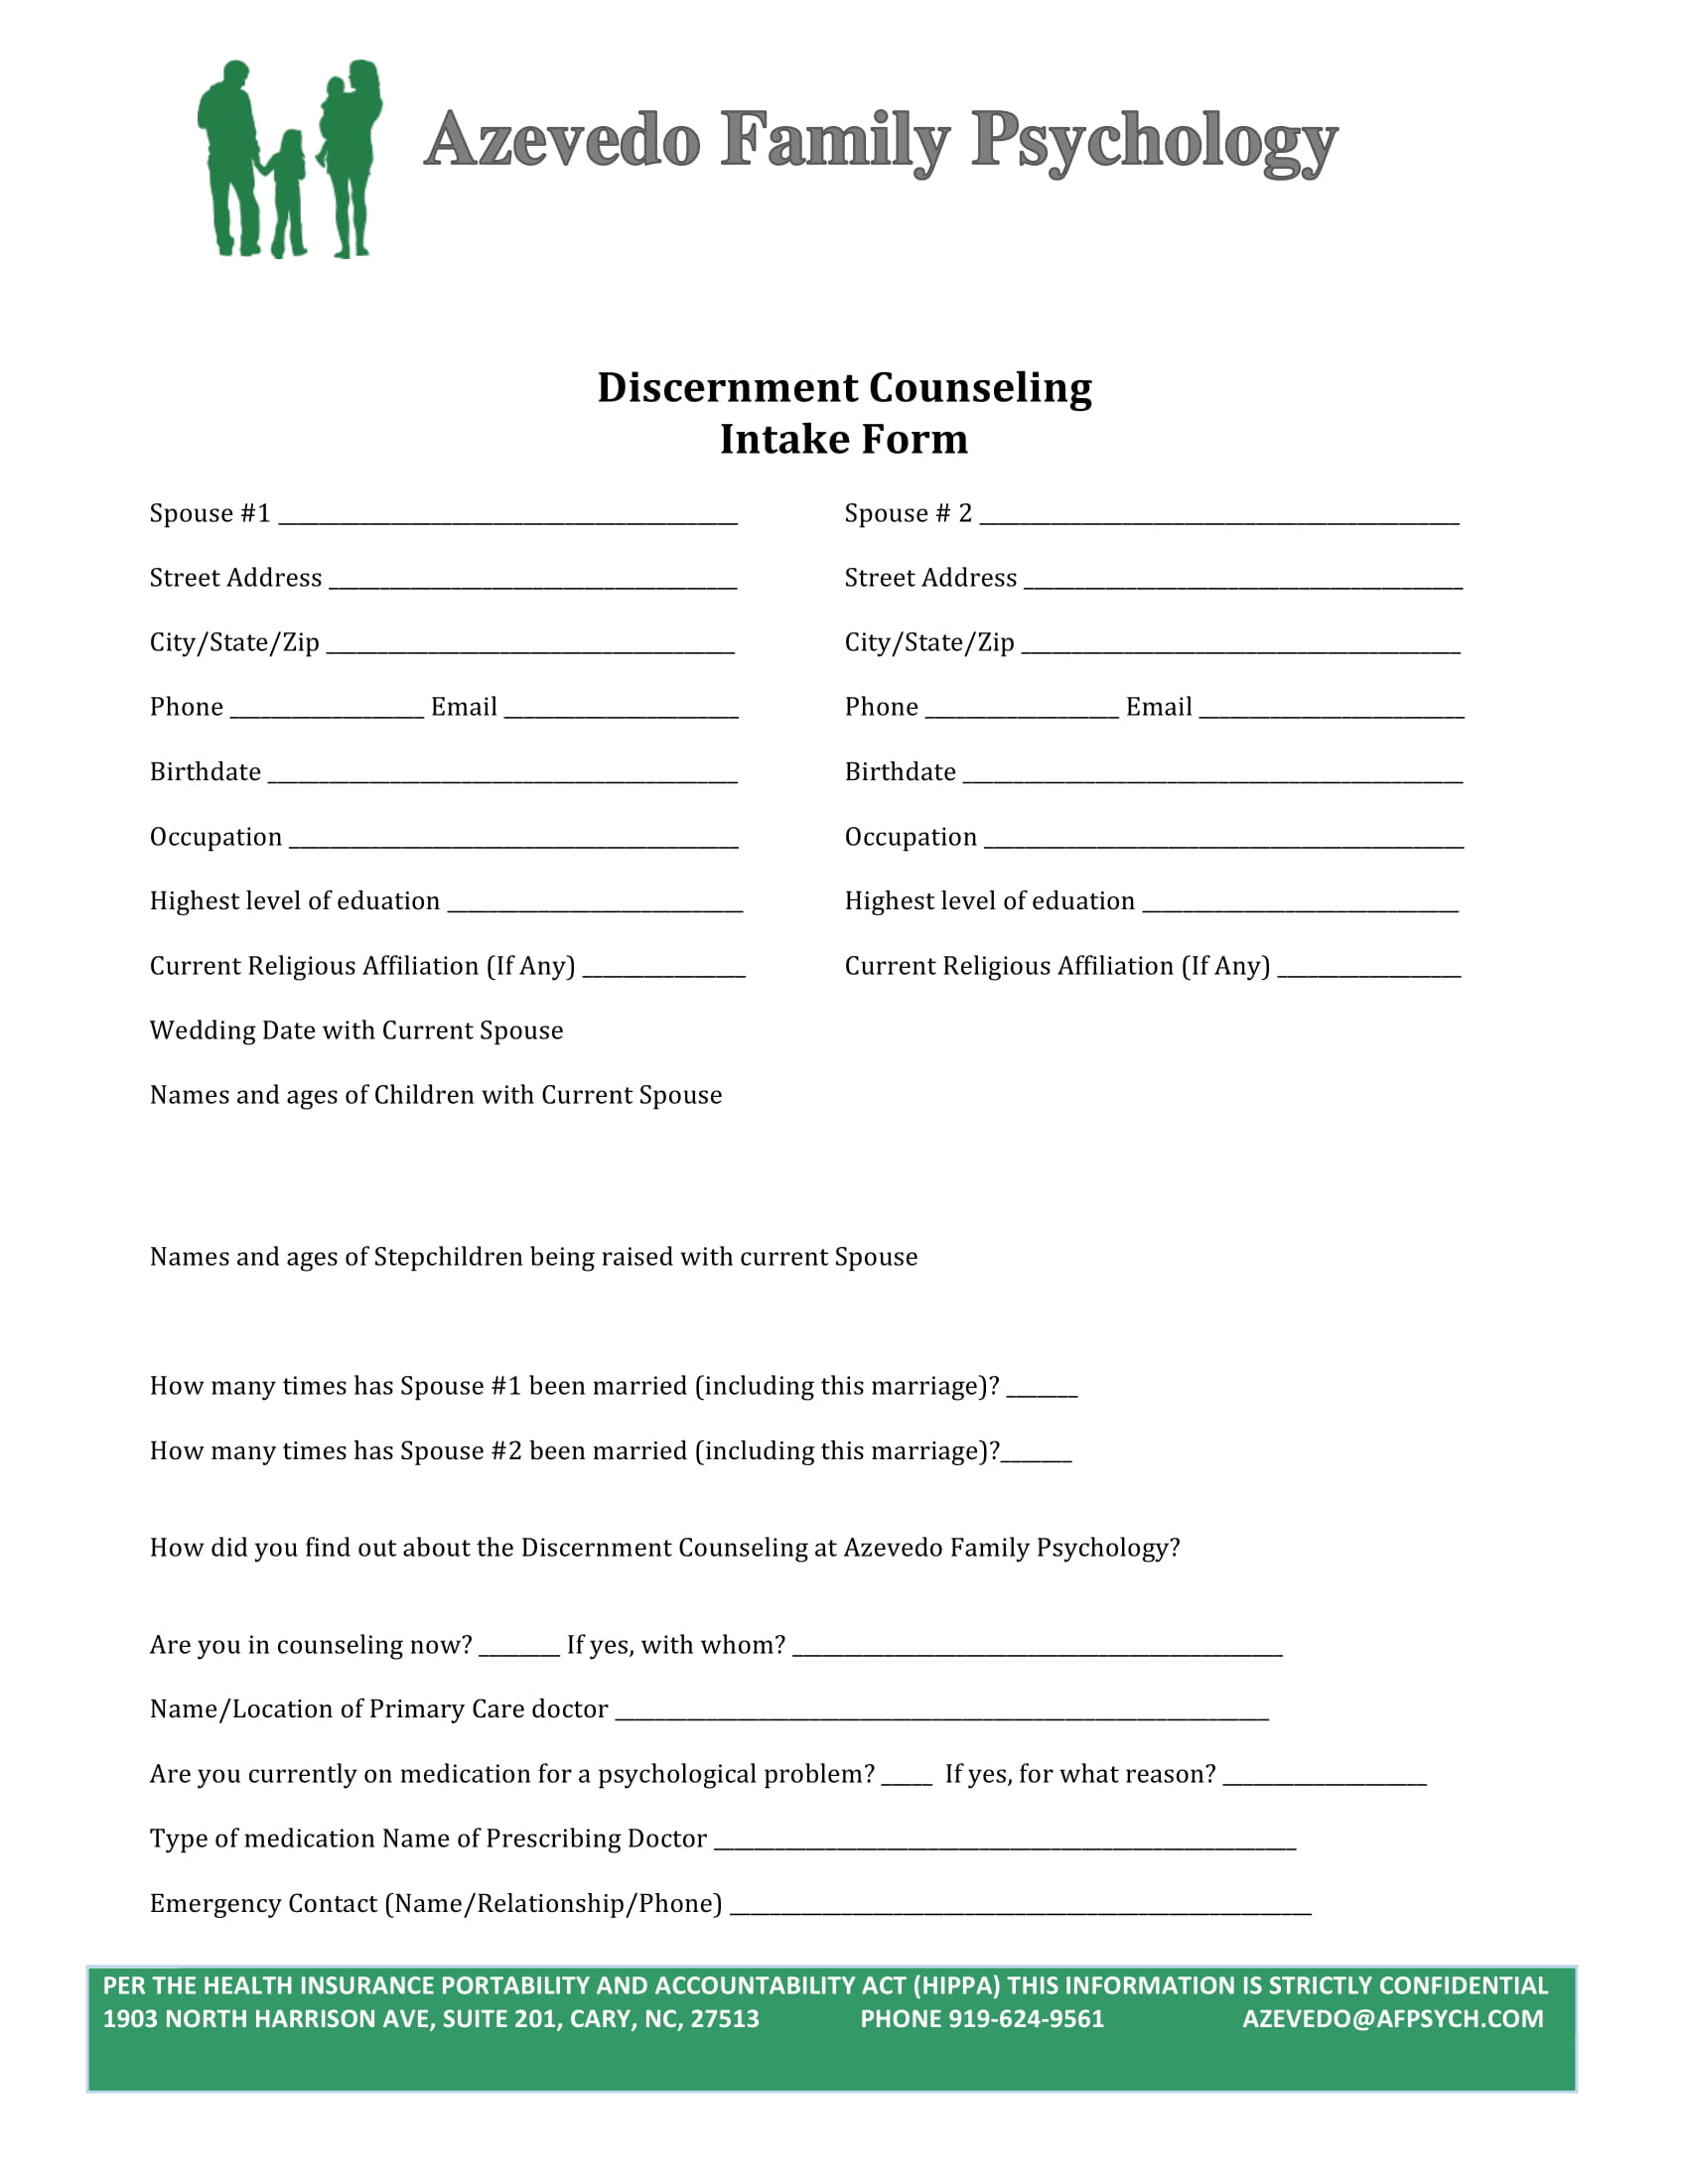 discernment counseling intake form 01